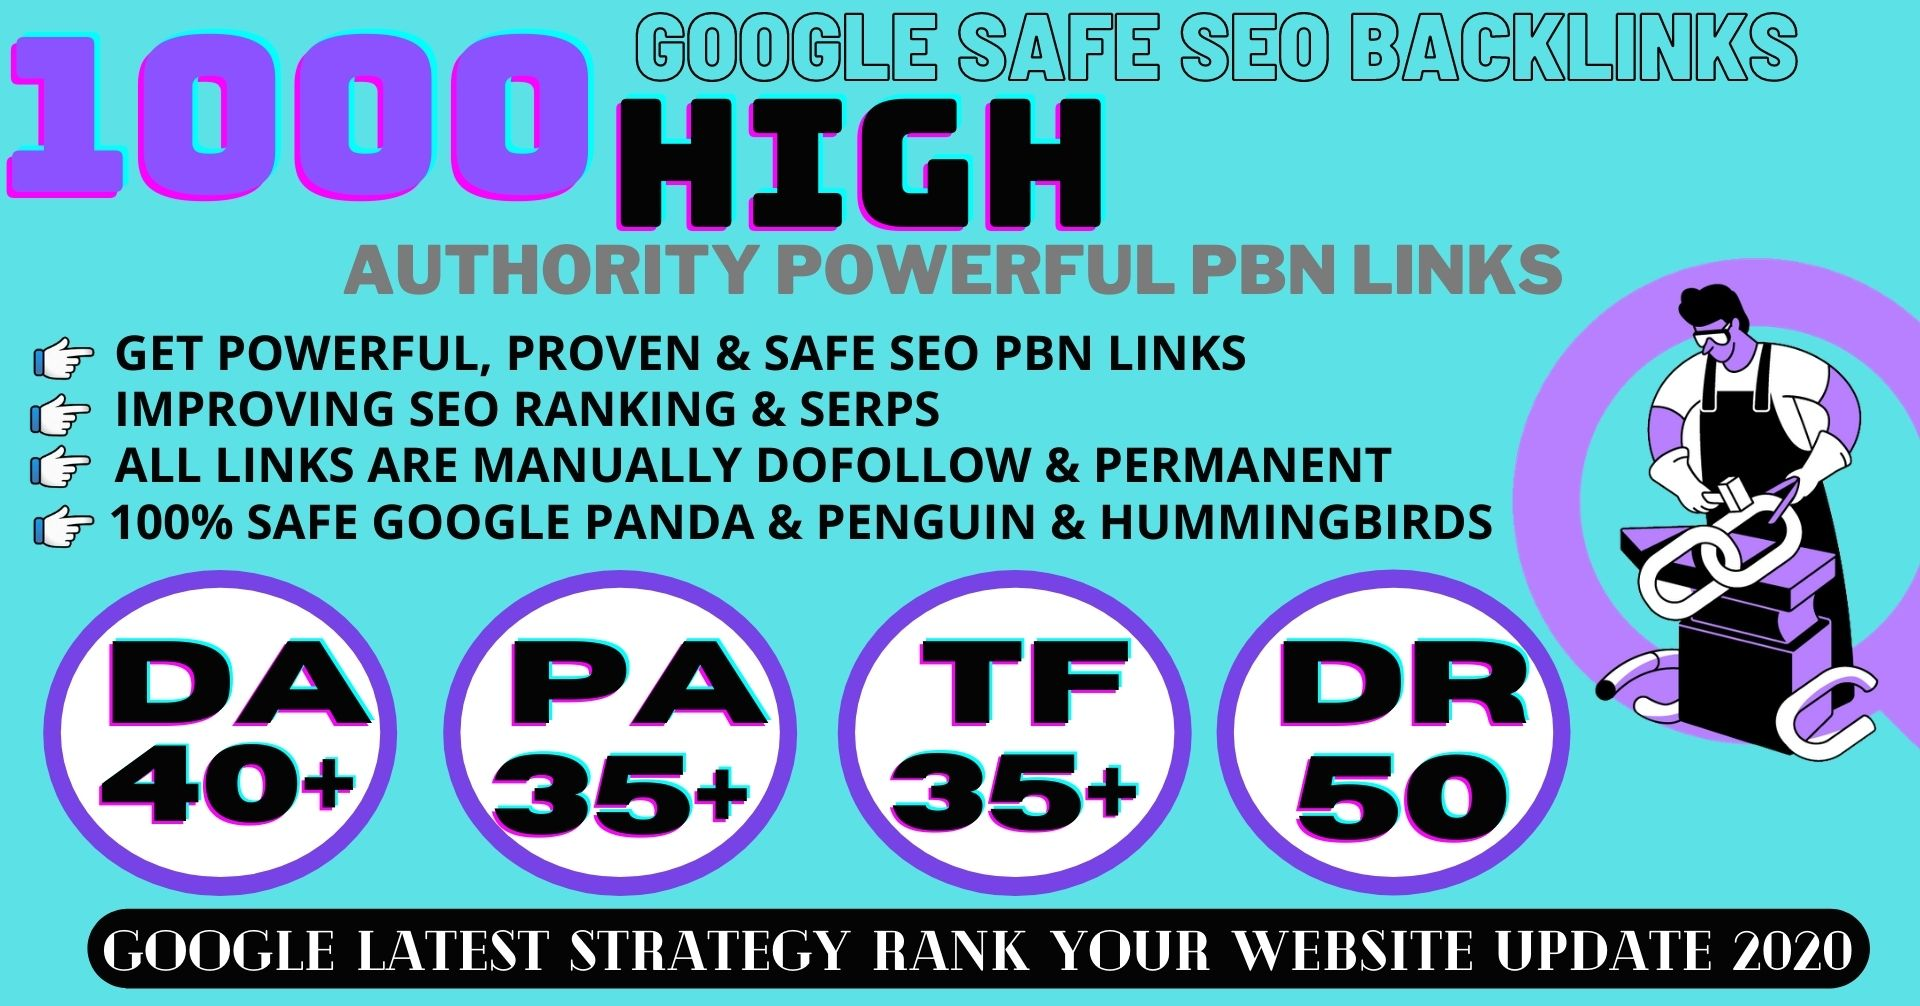 1000+ Permanent PBN Backlinks Web2.0 With High DA 40+ PA35+ Do-follow Links Homepage Unique website